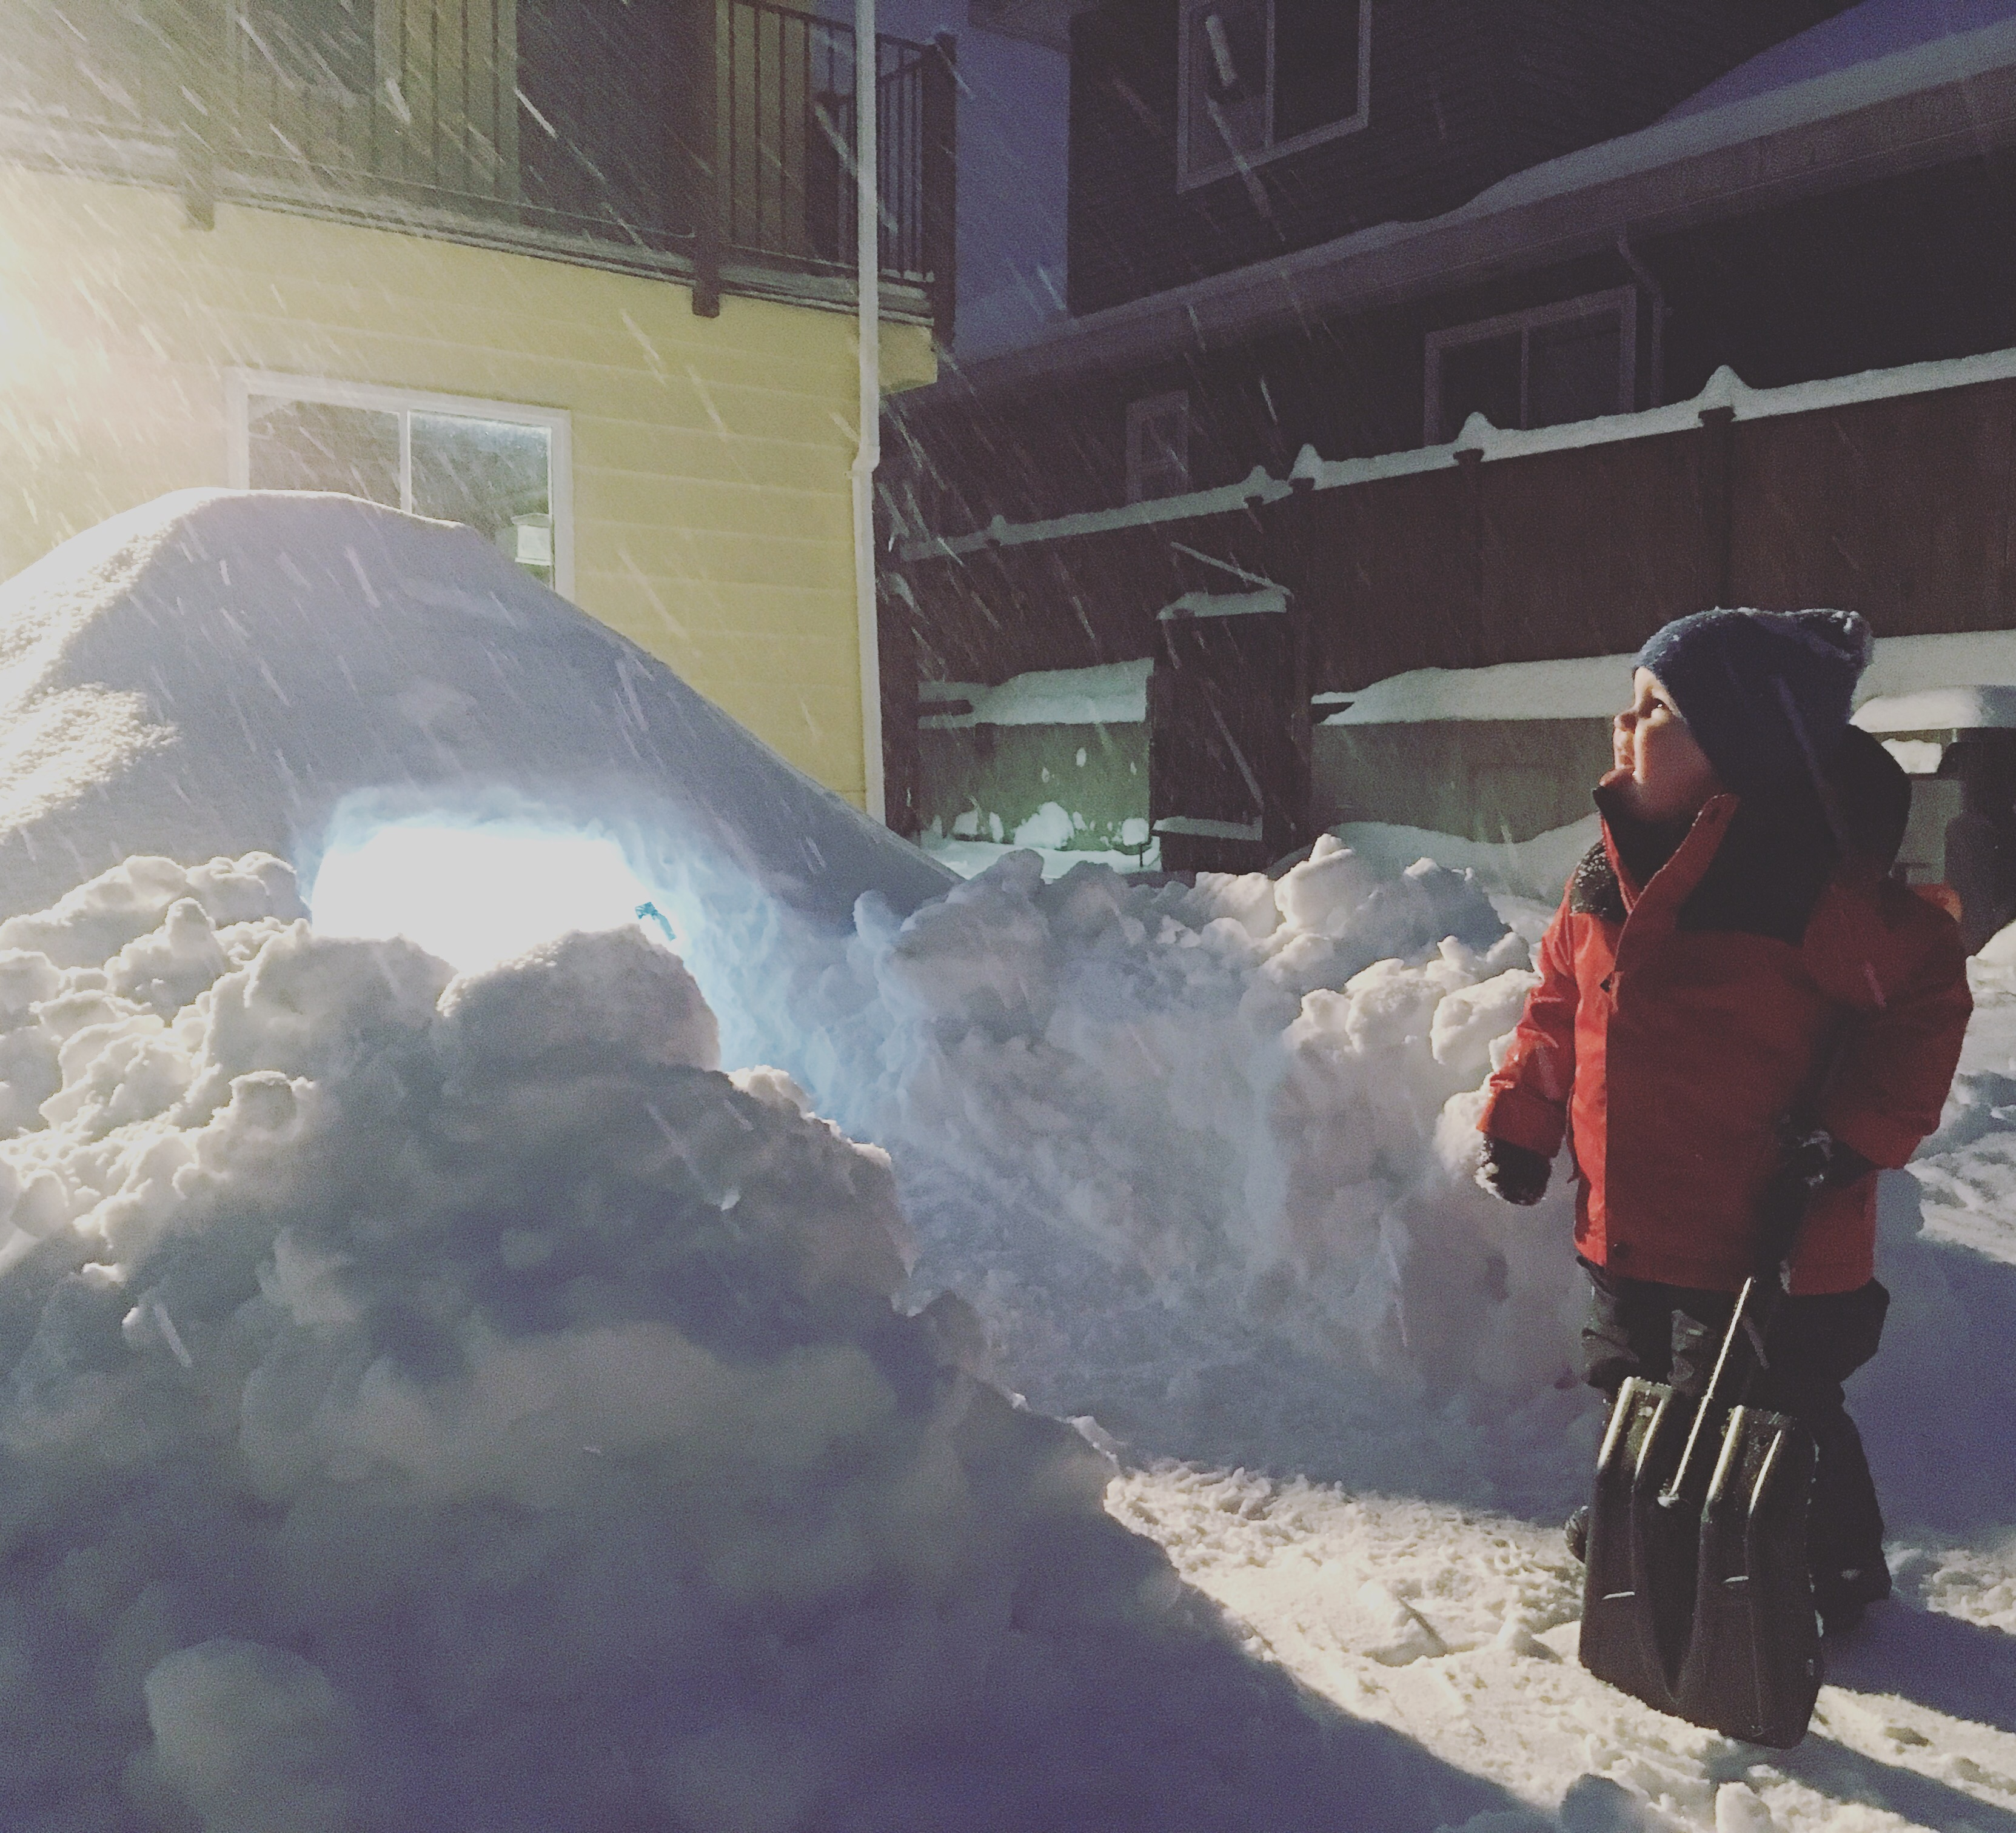 Back yard fort is another fun winter activities